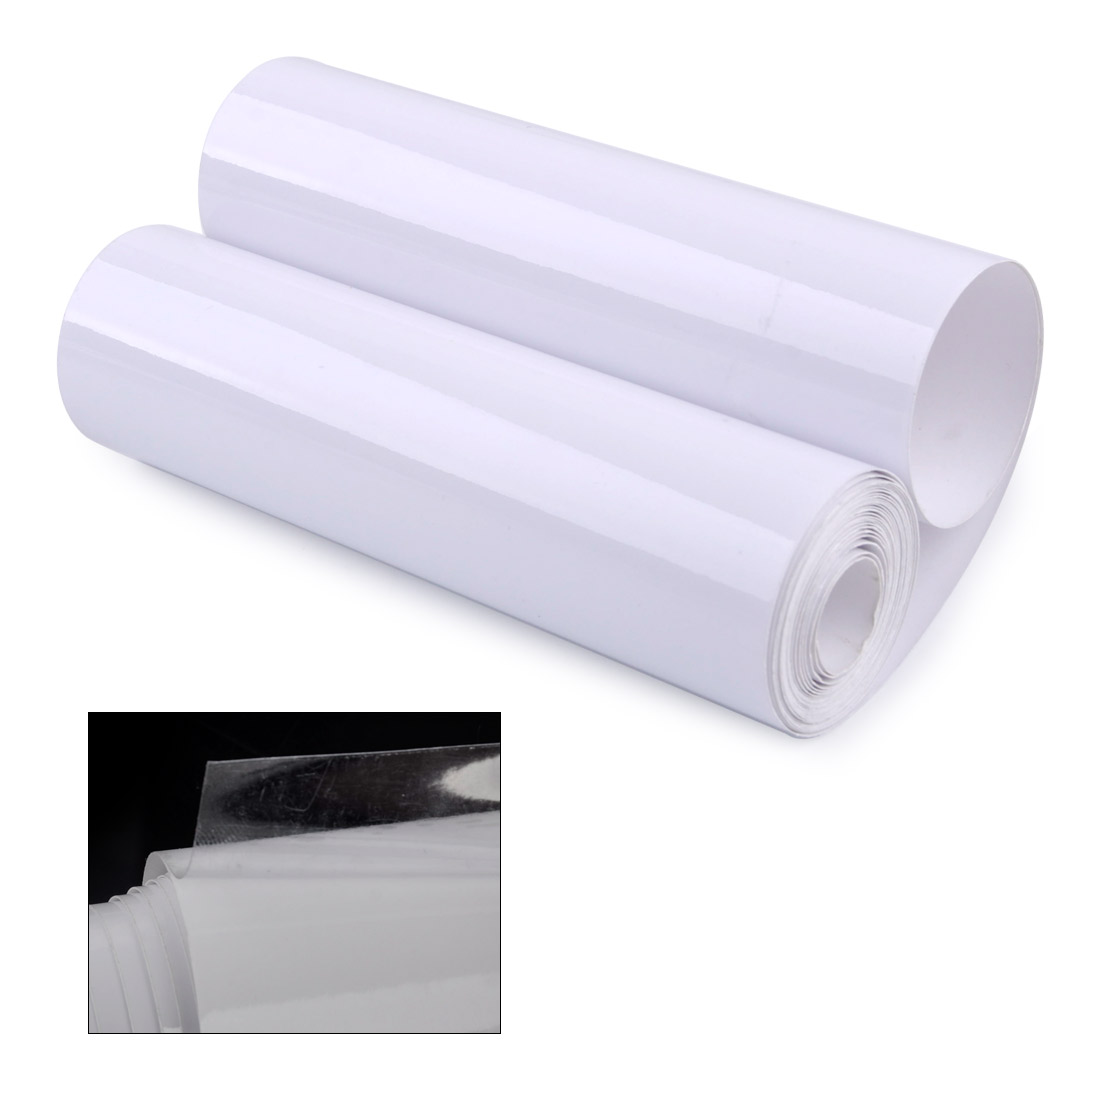 Car Polyurethane Clear Anti-Scratch Protection Film Sheet Decal Door Sill Edge Paint for Audi BMW Mazda Hyundai Honda Chevrolet(China (Mainland))